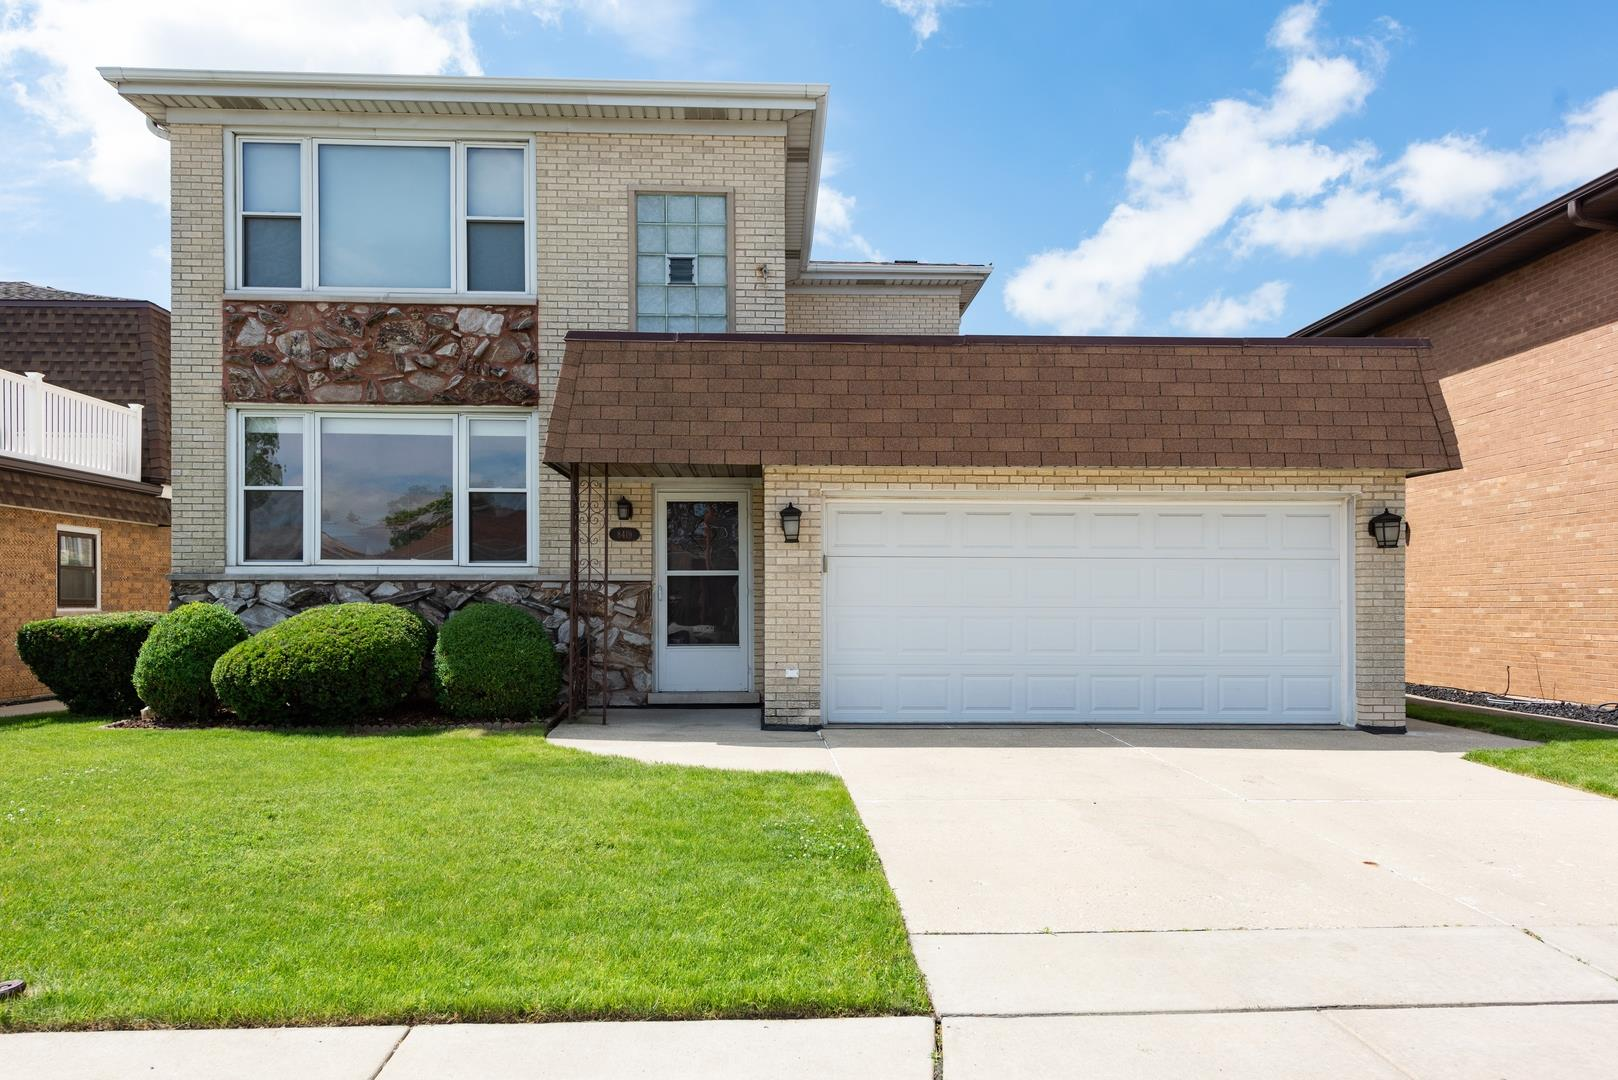 8419 W Brodman Avenue, Chicago, IL 60656 - #: 10762421